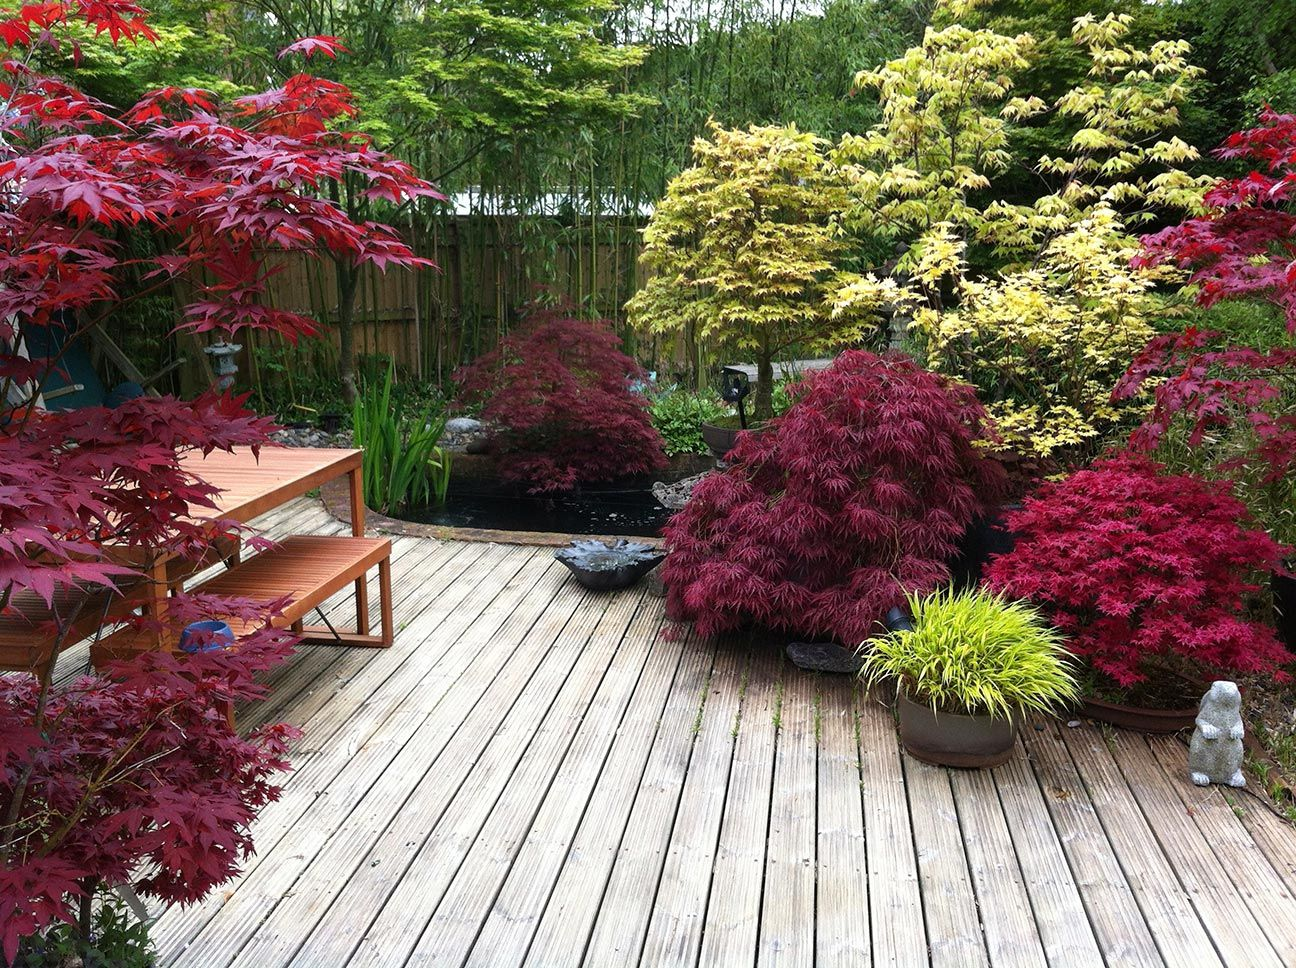 Japanese Garden Plants Japanese Maples So Many Awesome Colorful Varieties To Choose From